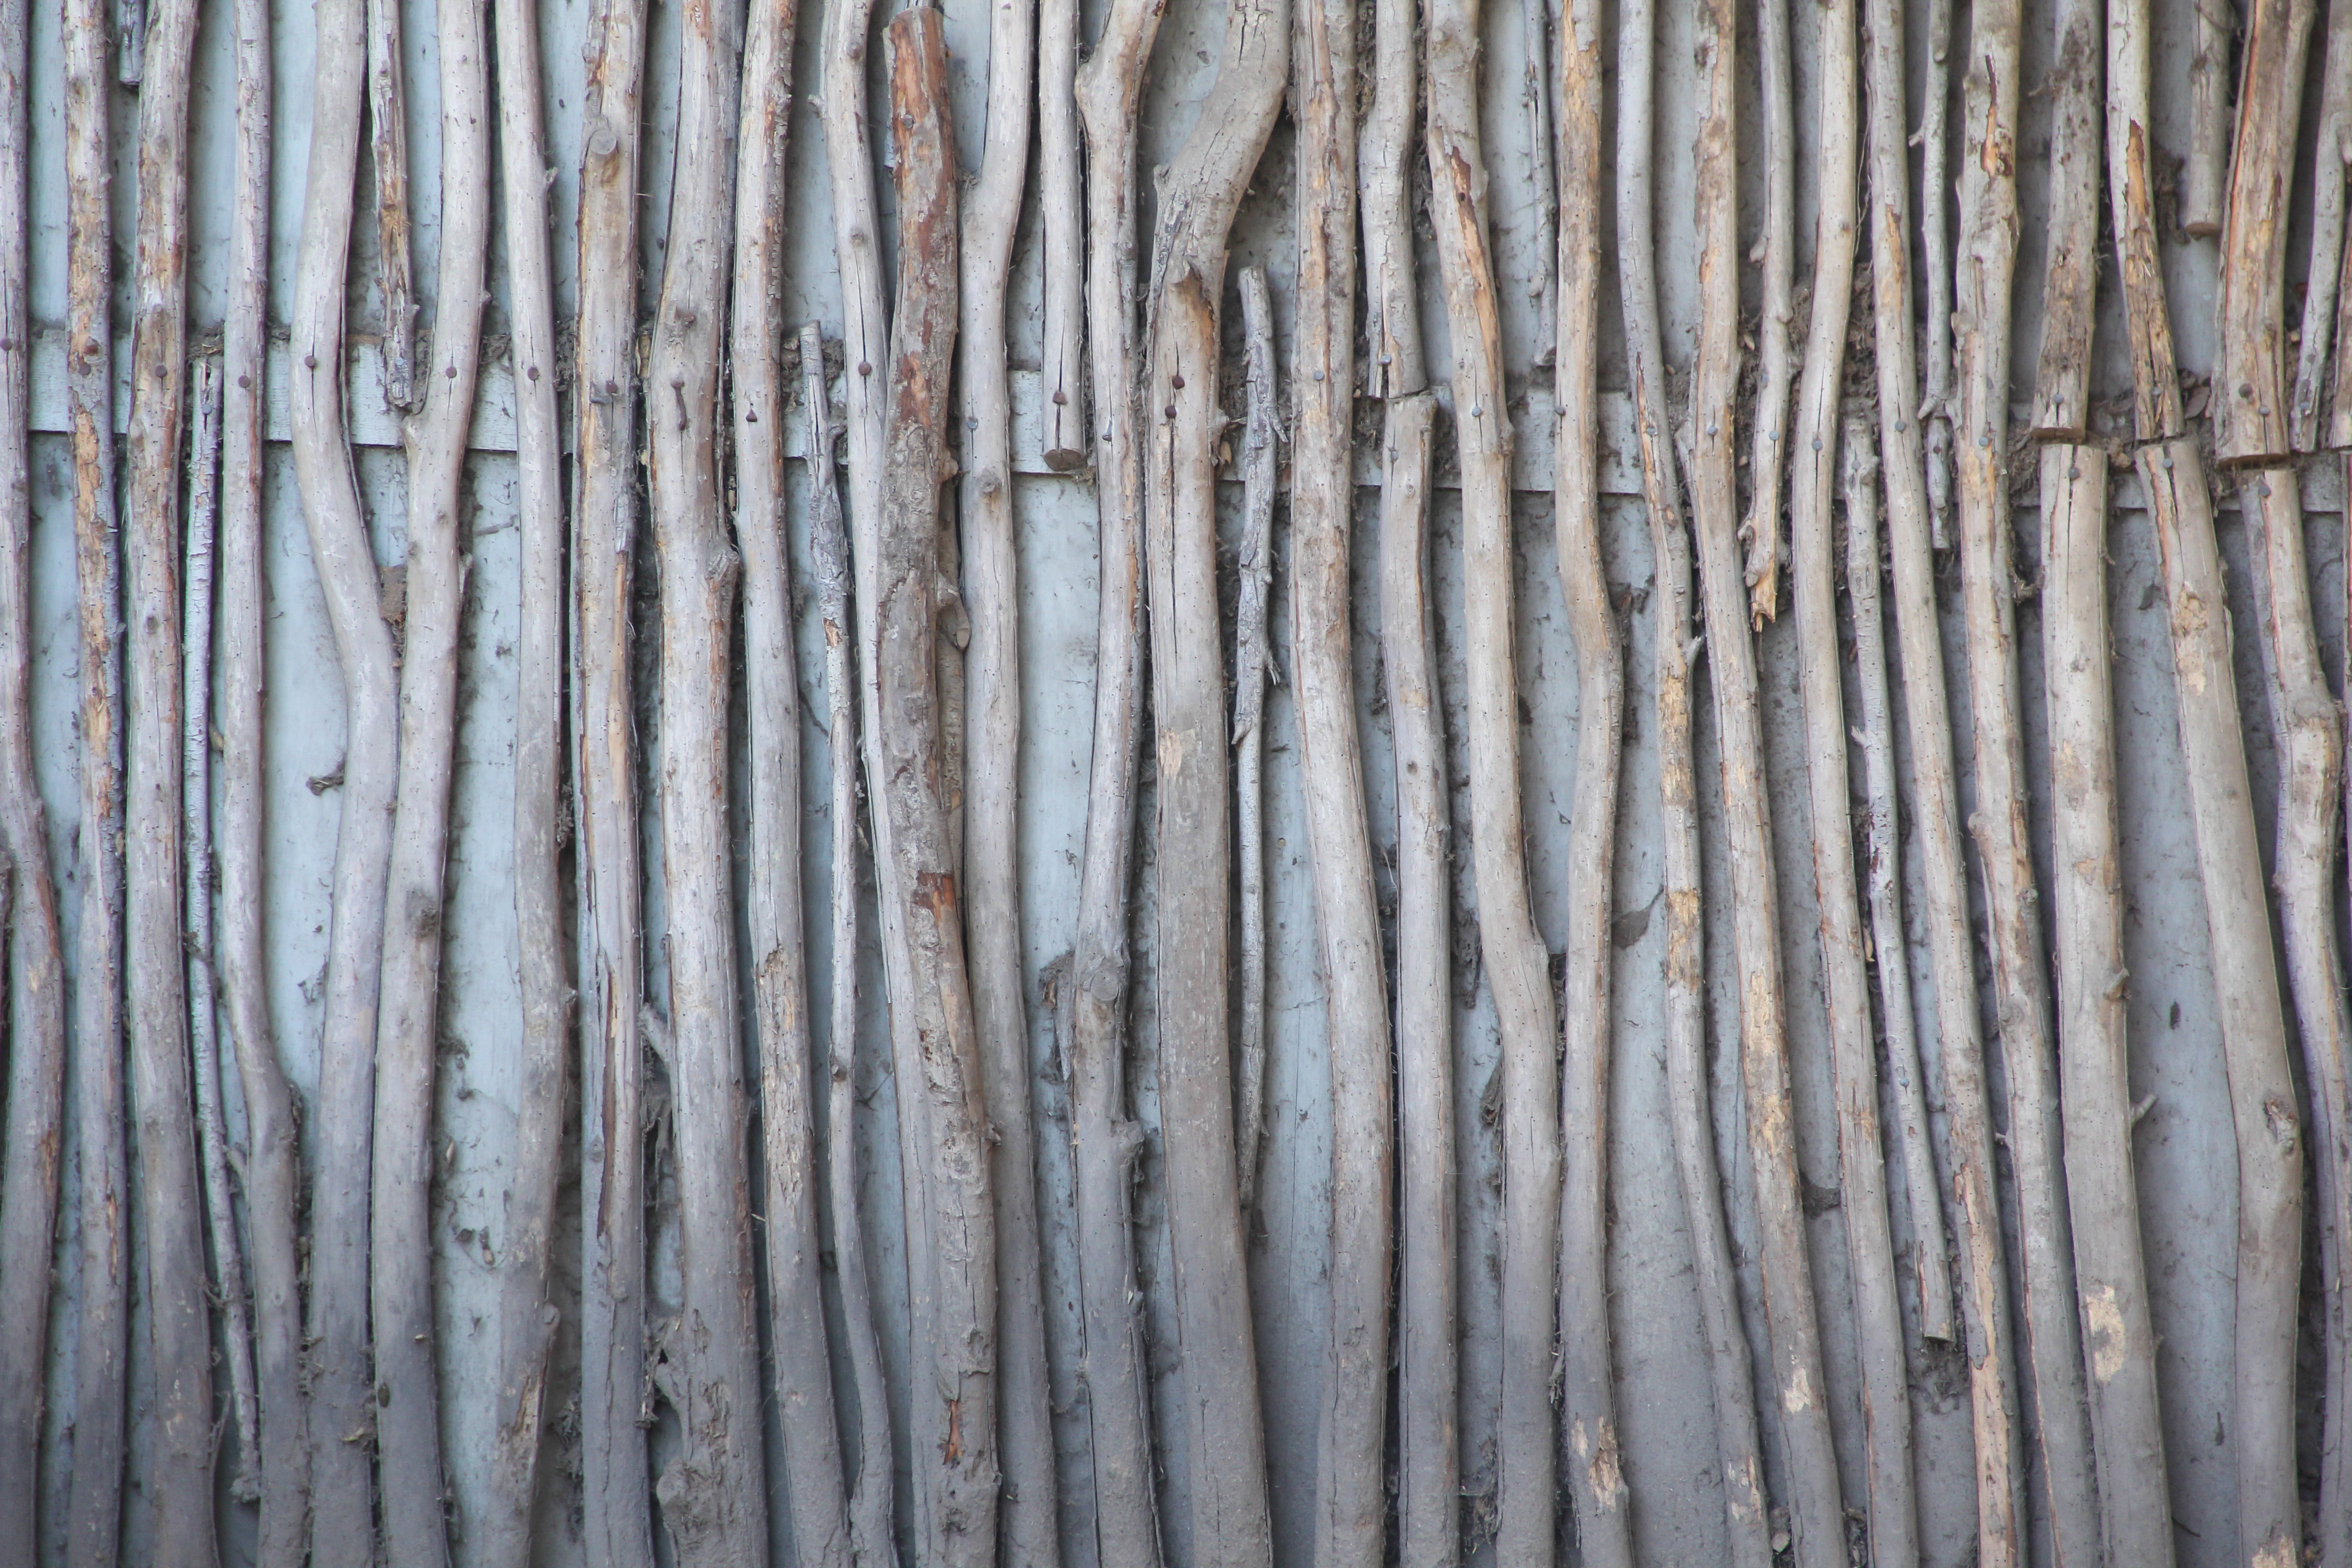 stick wood texture rough natural wall timber photo design. Black Bedroom Furniture Sets. Home Design Ideas